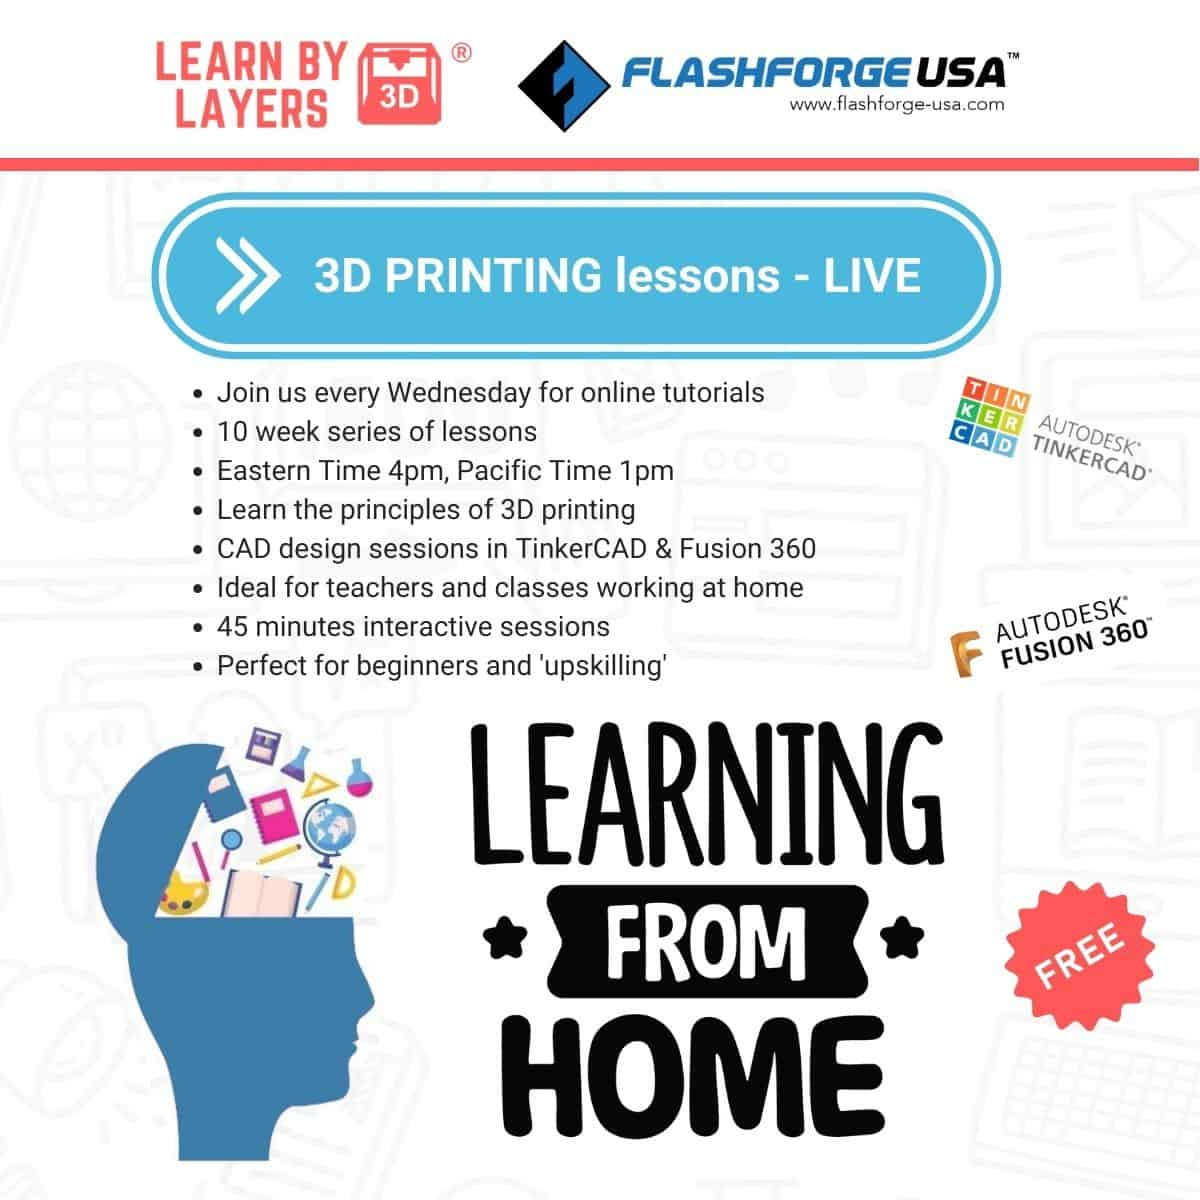 learnbylayers and flashforge live lessons